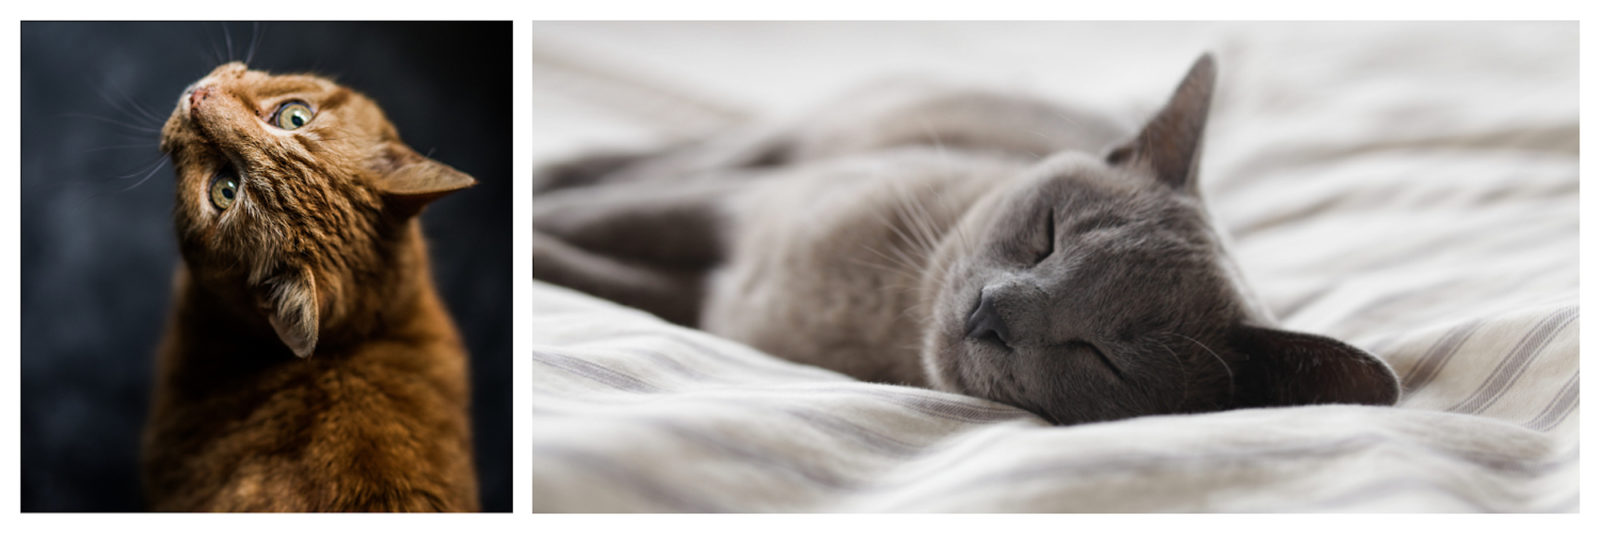 A beautiful, sleek tabby cat with green eyes looking upwards (left). A soft gray cat happily sleeping on its side on a bed (right).